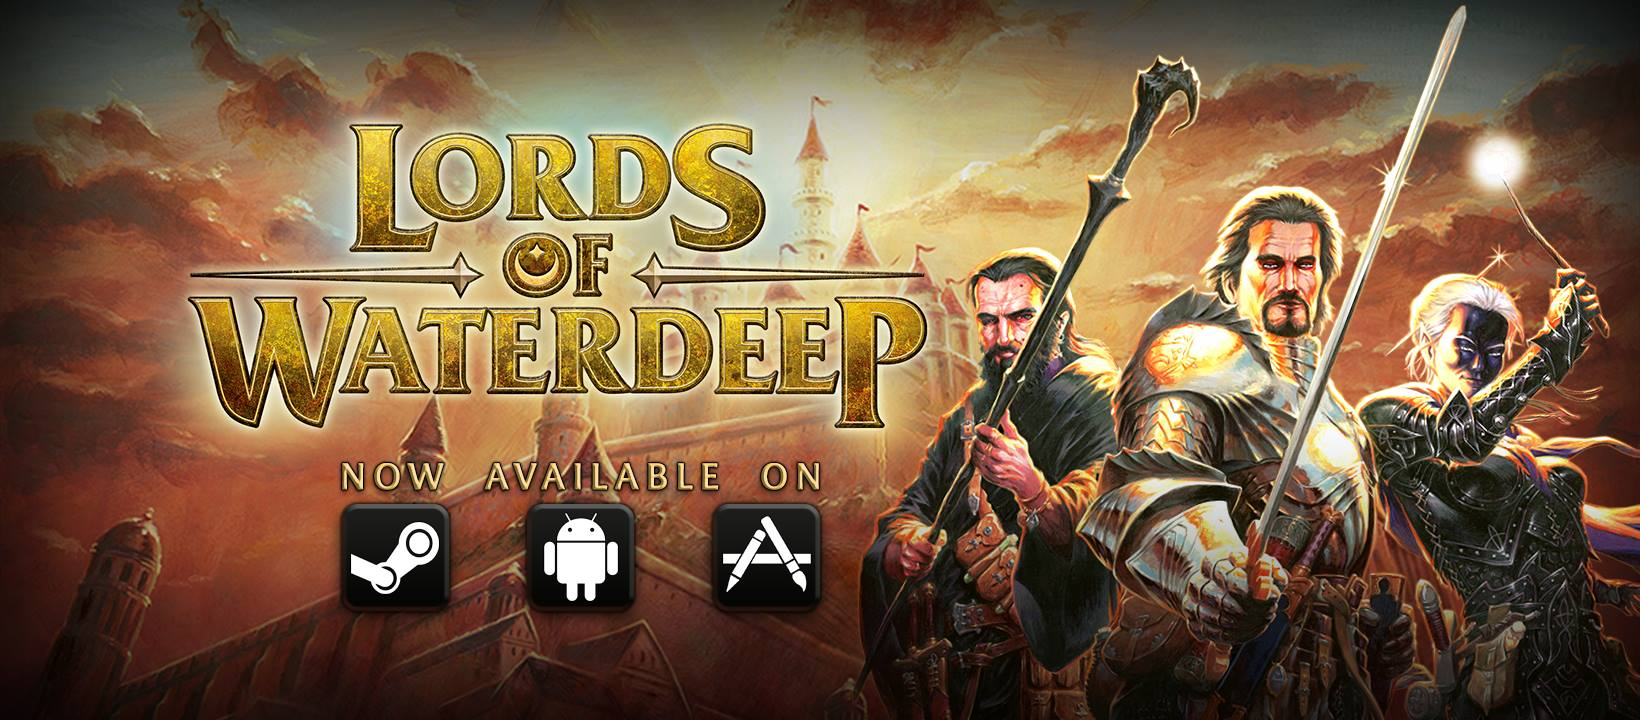 Lords of Waterdeep Available On PC And Android | DDO Players